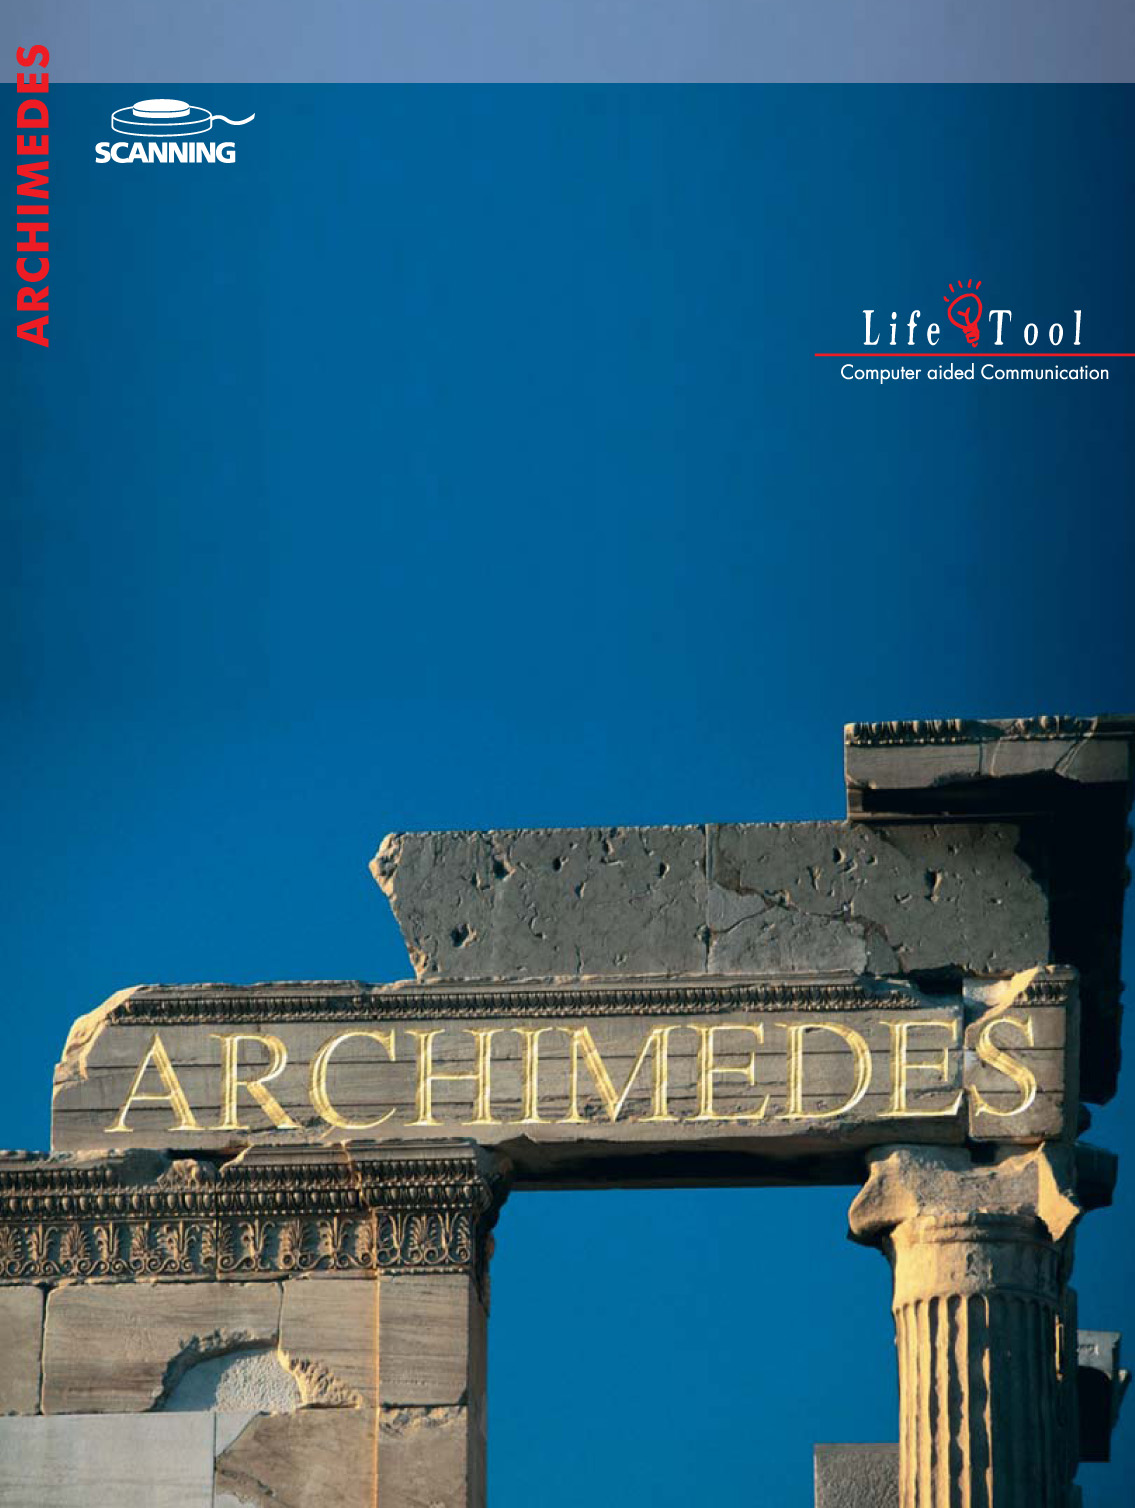 Lifetool Software Archimedes CD-Version